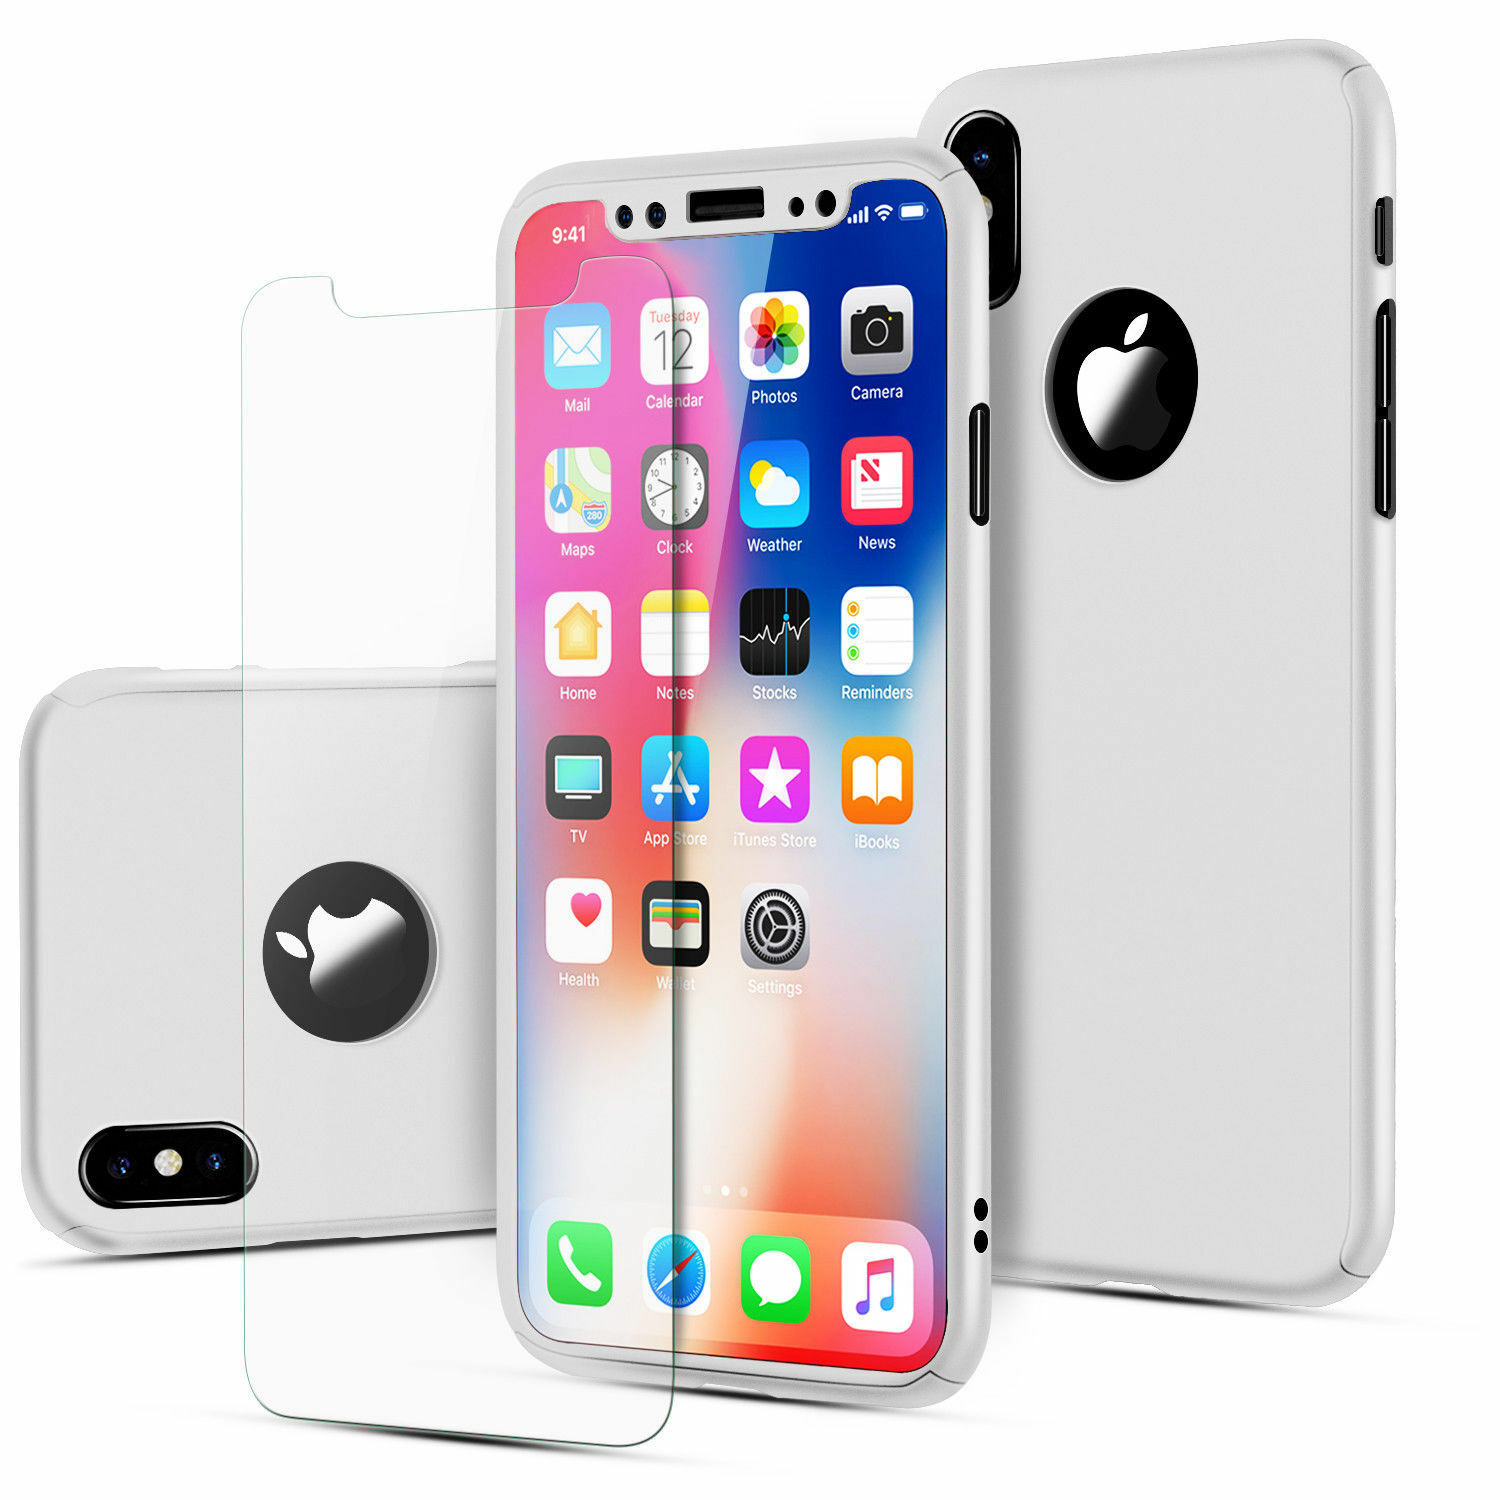 Case Ultra Thin Slim Hard Cover+ Tempered Glass For Apple iPhone 8 6S 7 Plus X